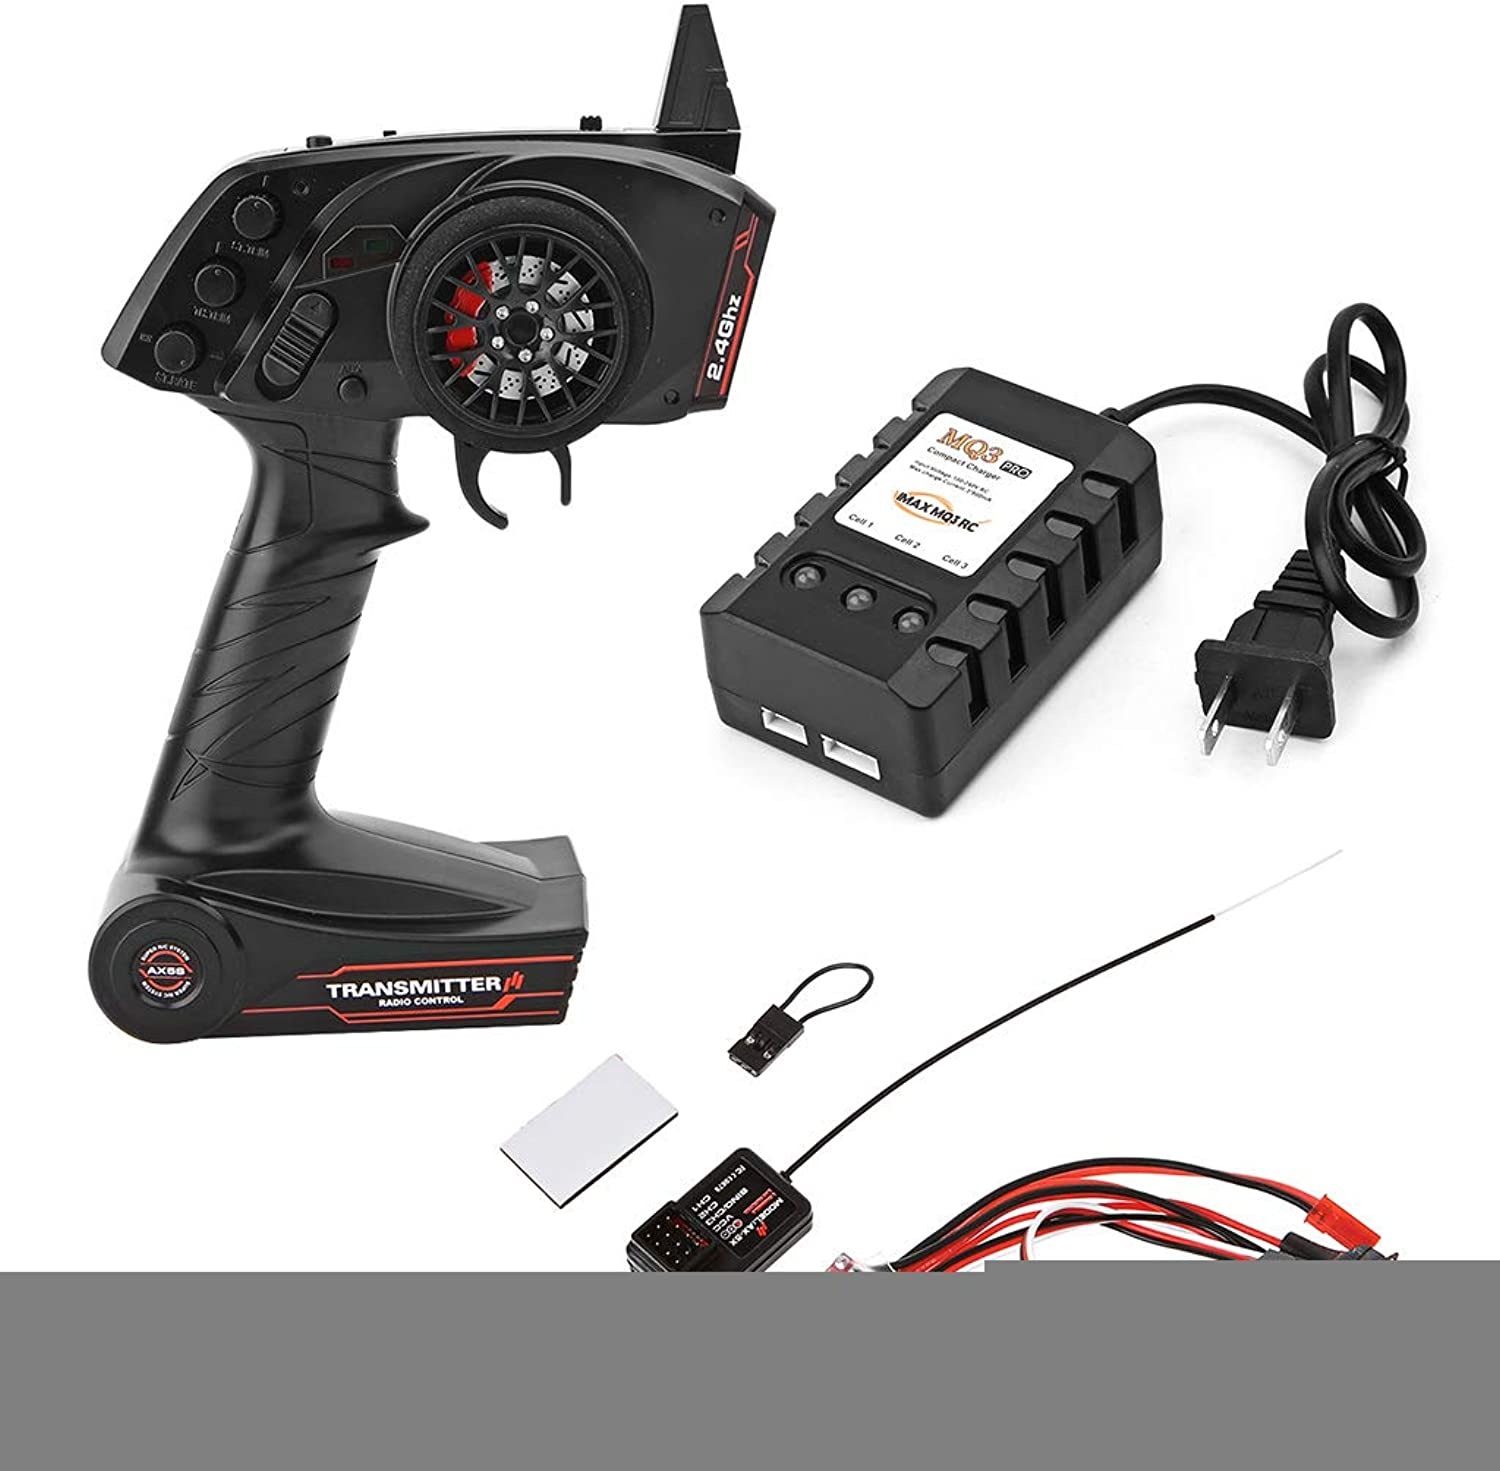 SmallJun Full Scale Remote Control + Receiver + ESC Upgrade OP Fitting Accessories for WPL RC Car Ship Model,2